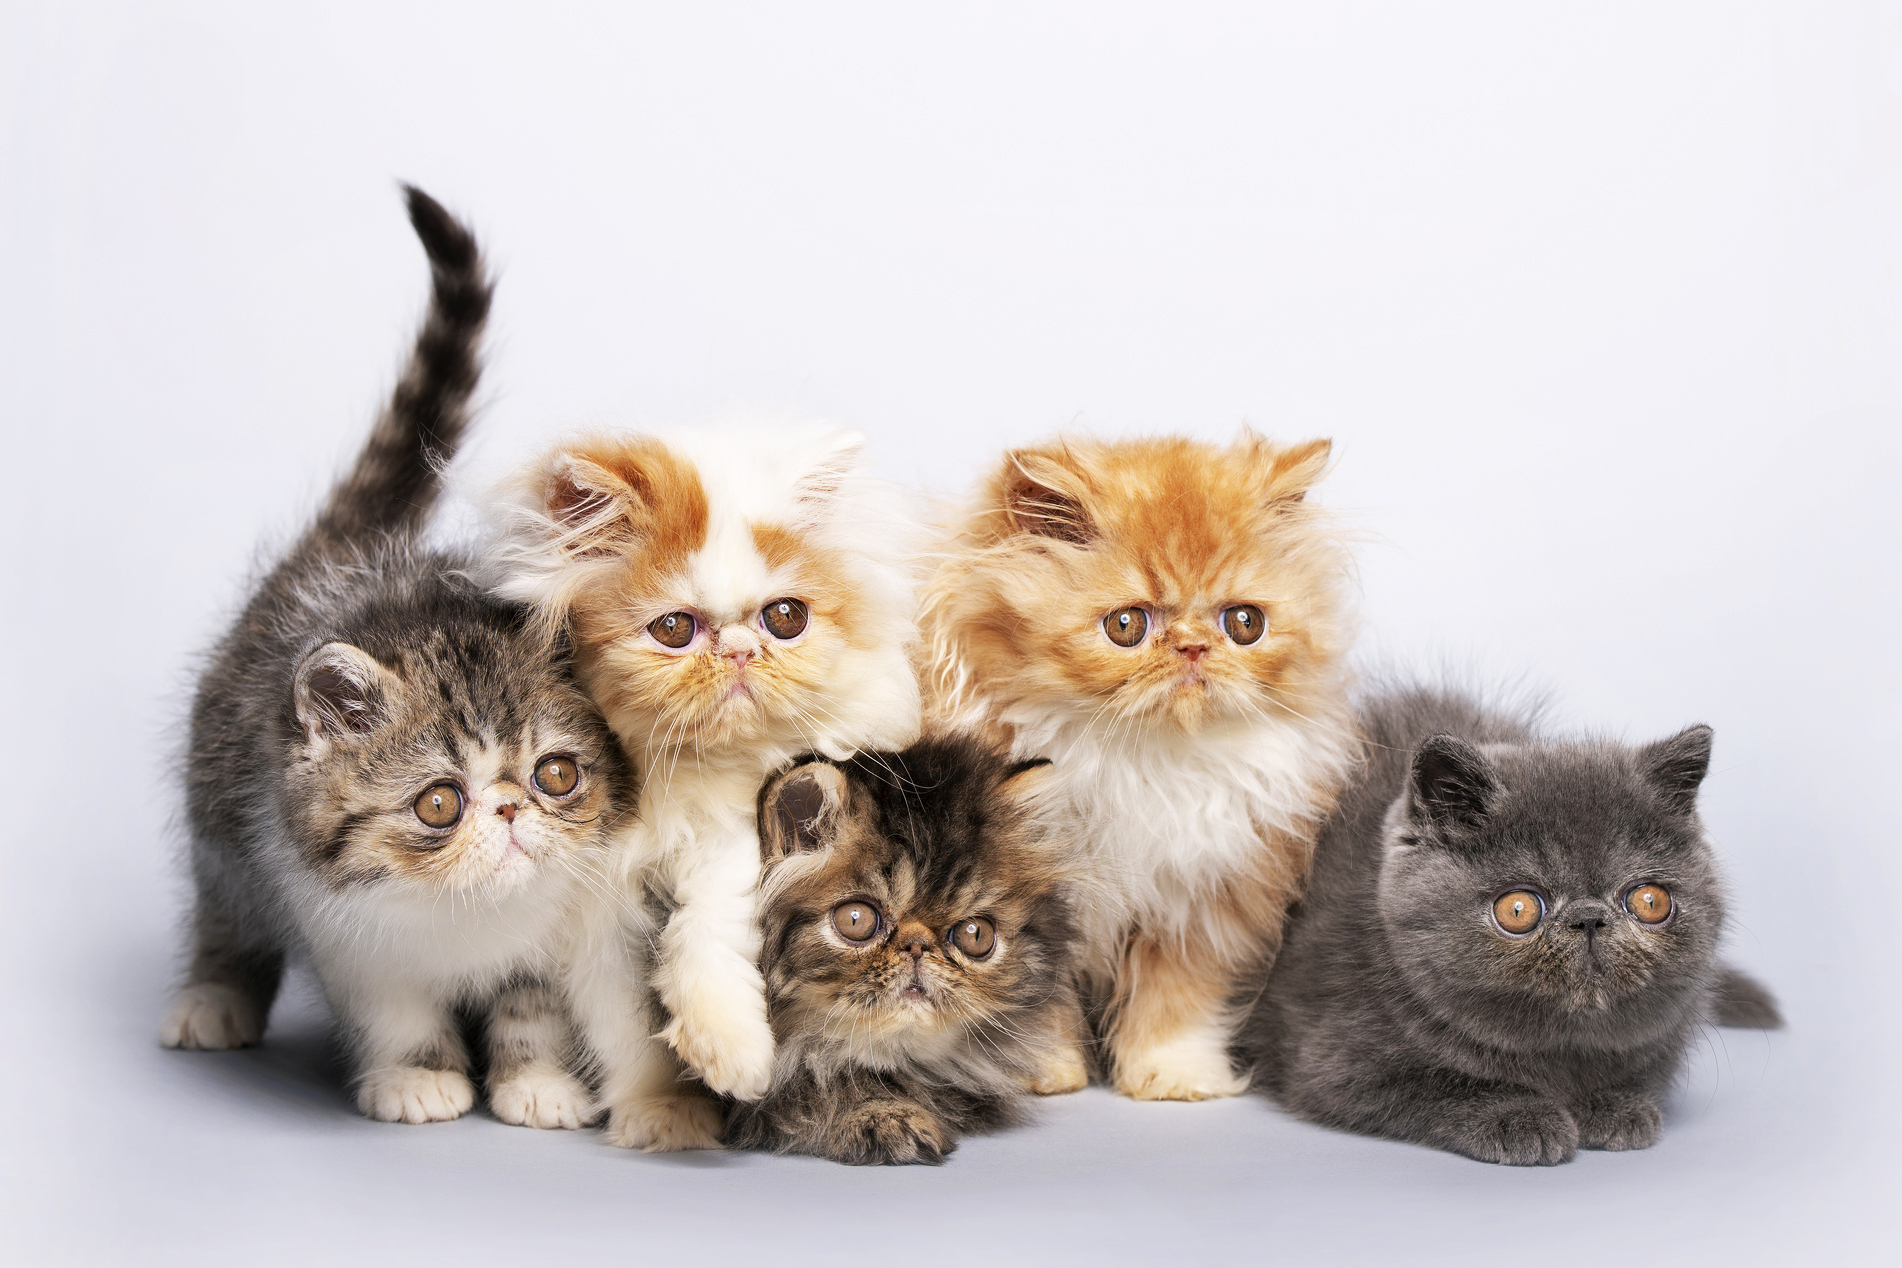 A group of Persian cats